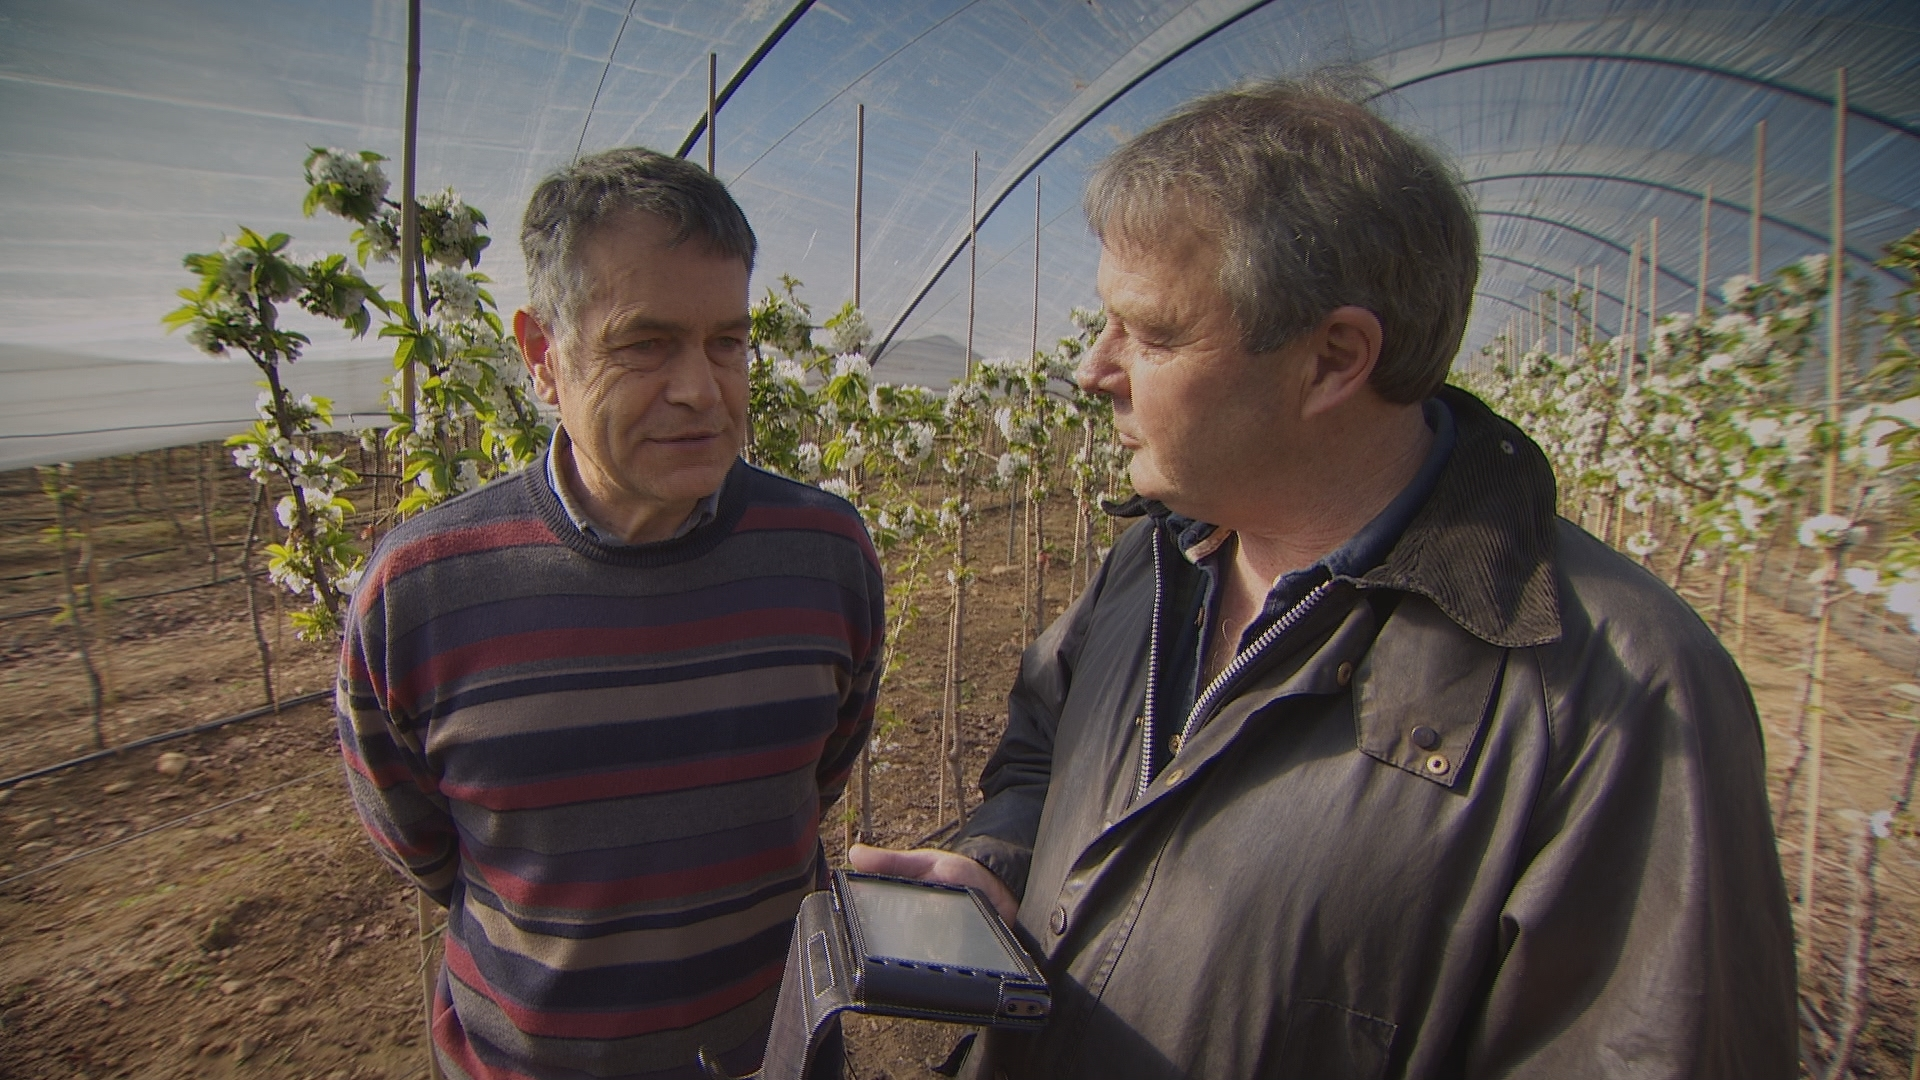 Farmer Peter Thomson, left, interviewed by Landward presenter Euan McIlwraith.